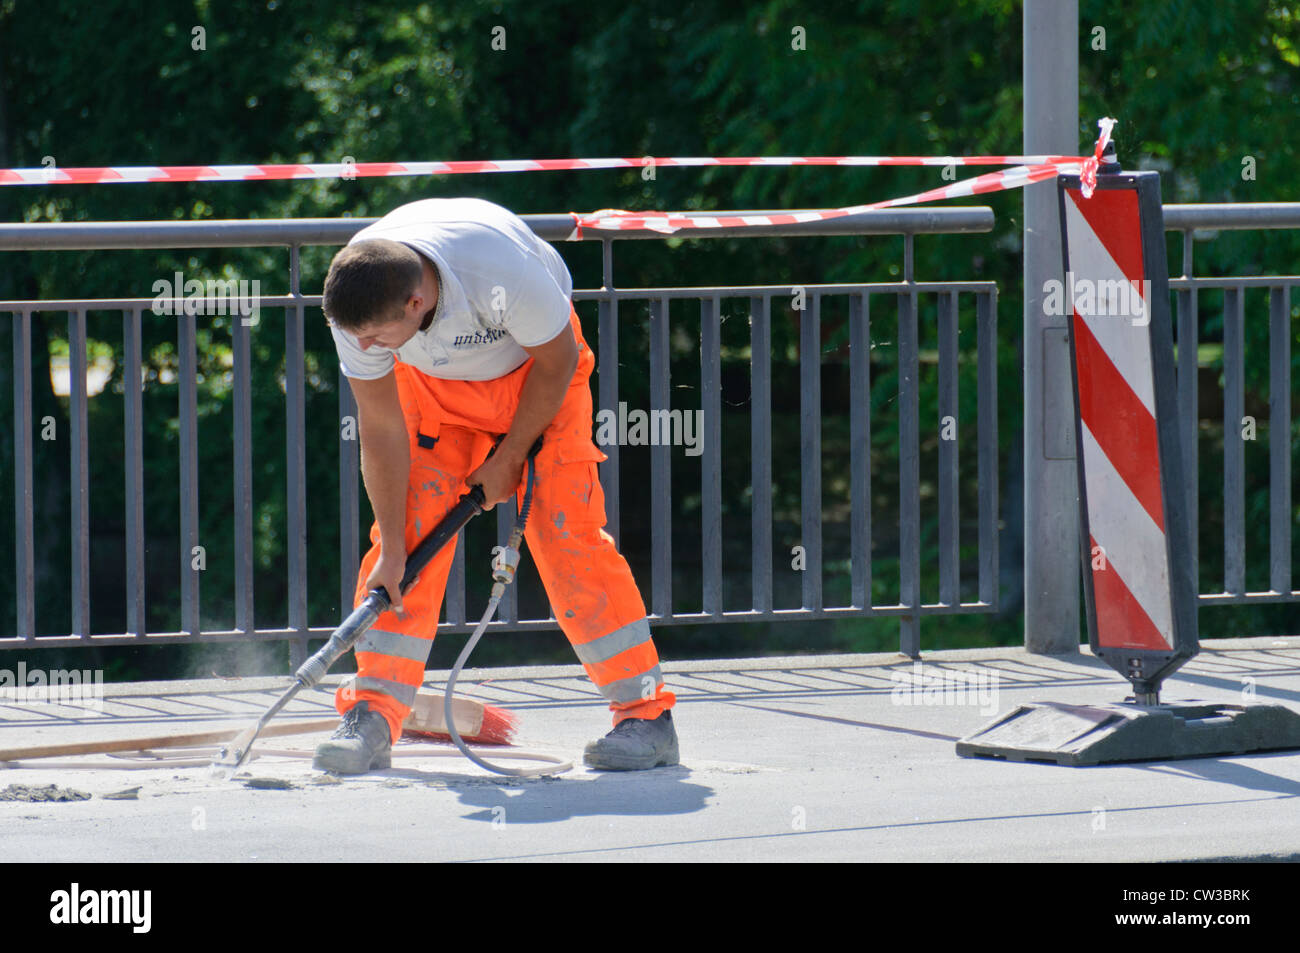 Construction worker wearing orange signal color work pants, working with a compressed air hammer on a bridge - Heilbronn Stock Photo